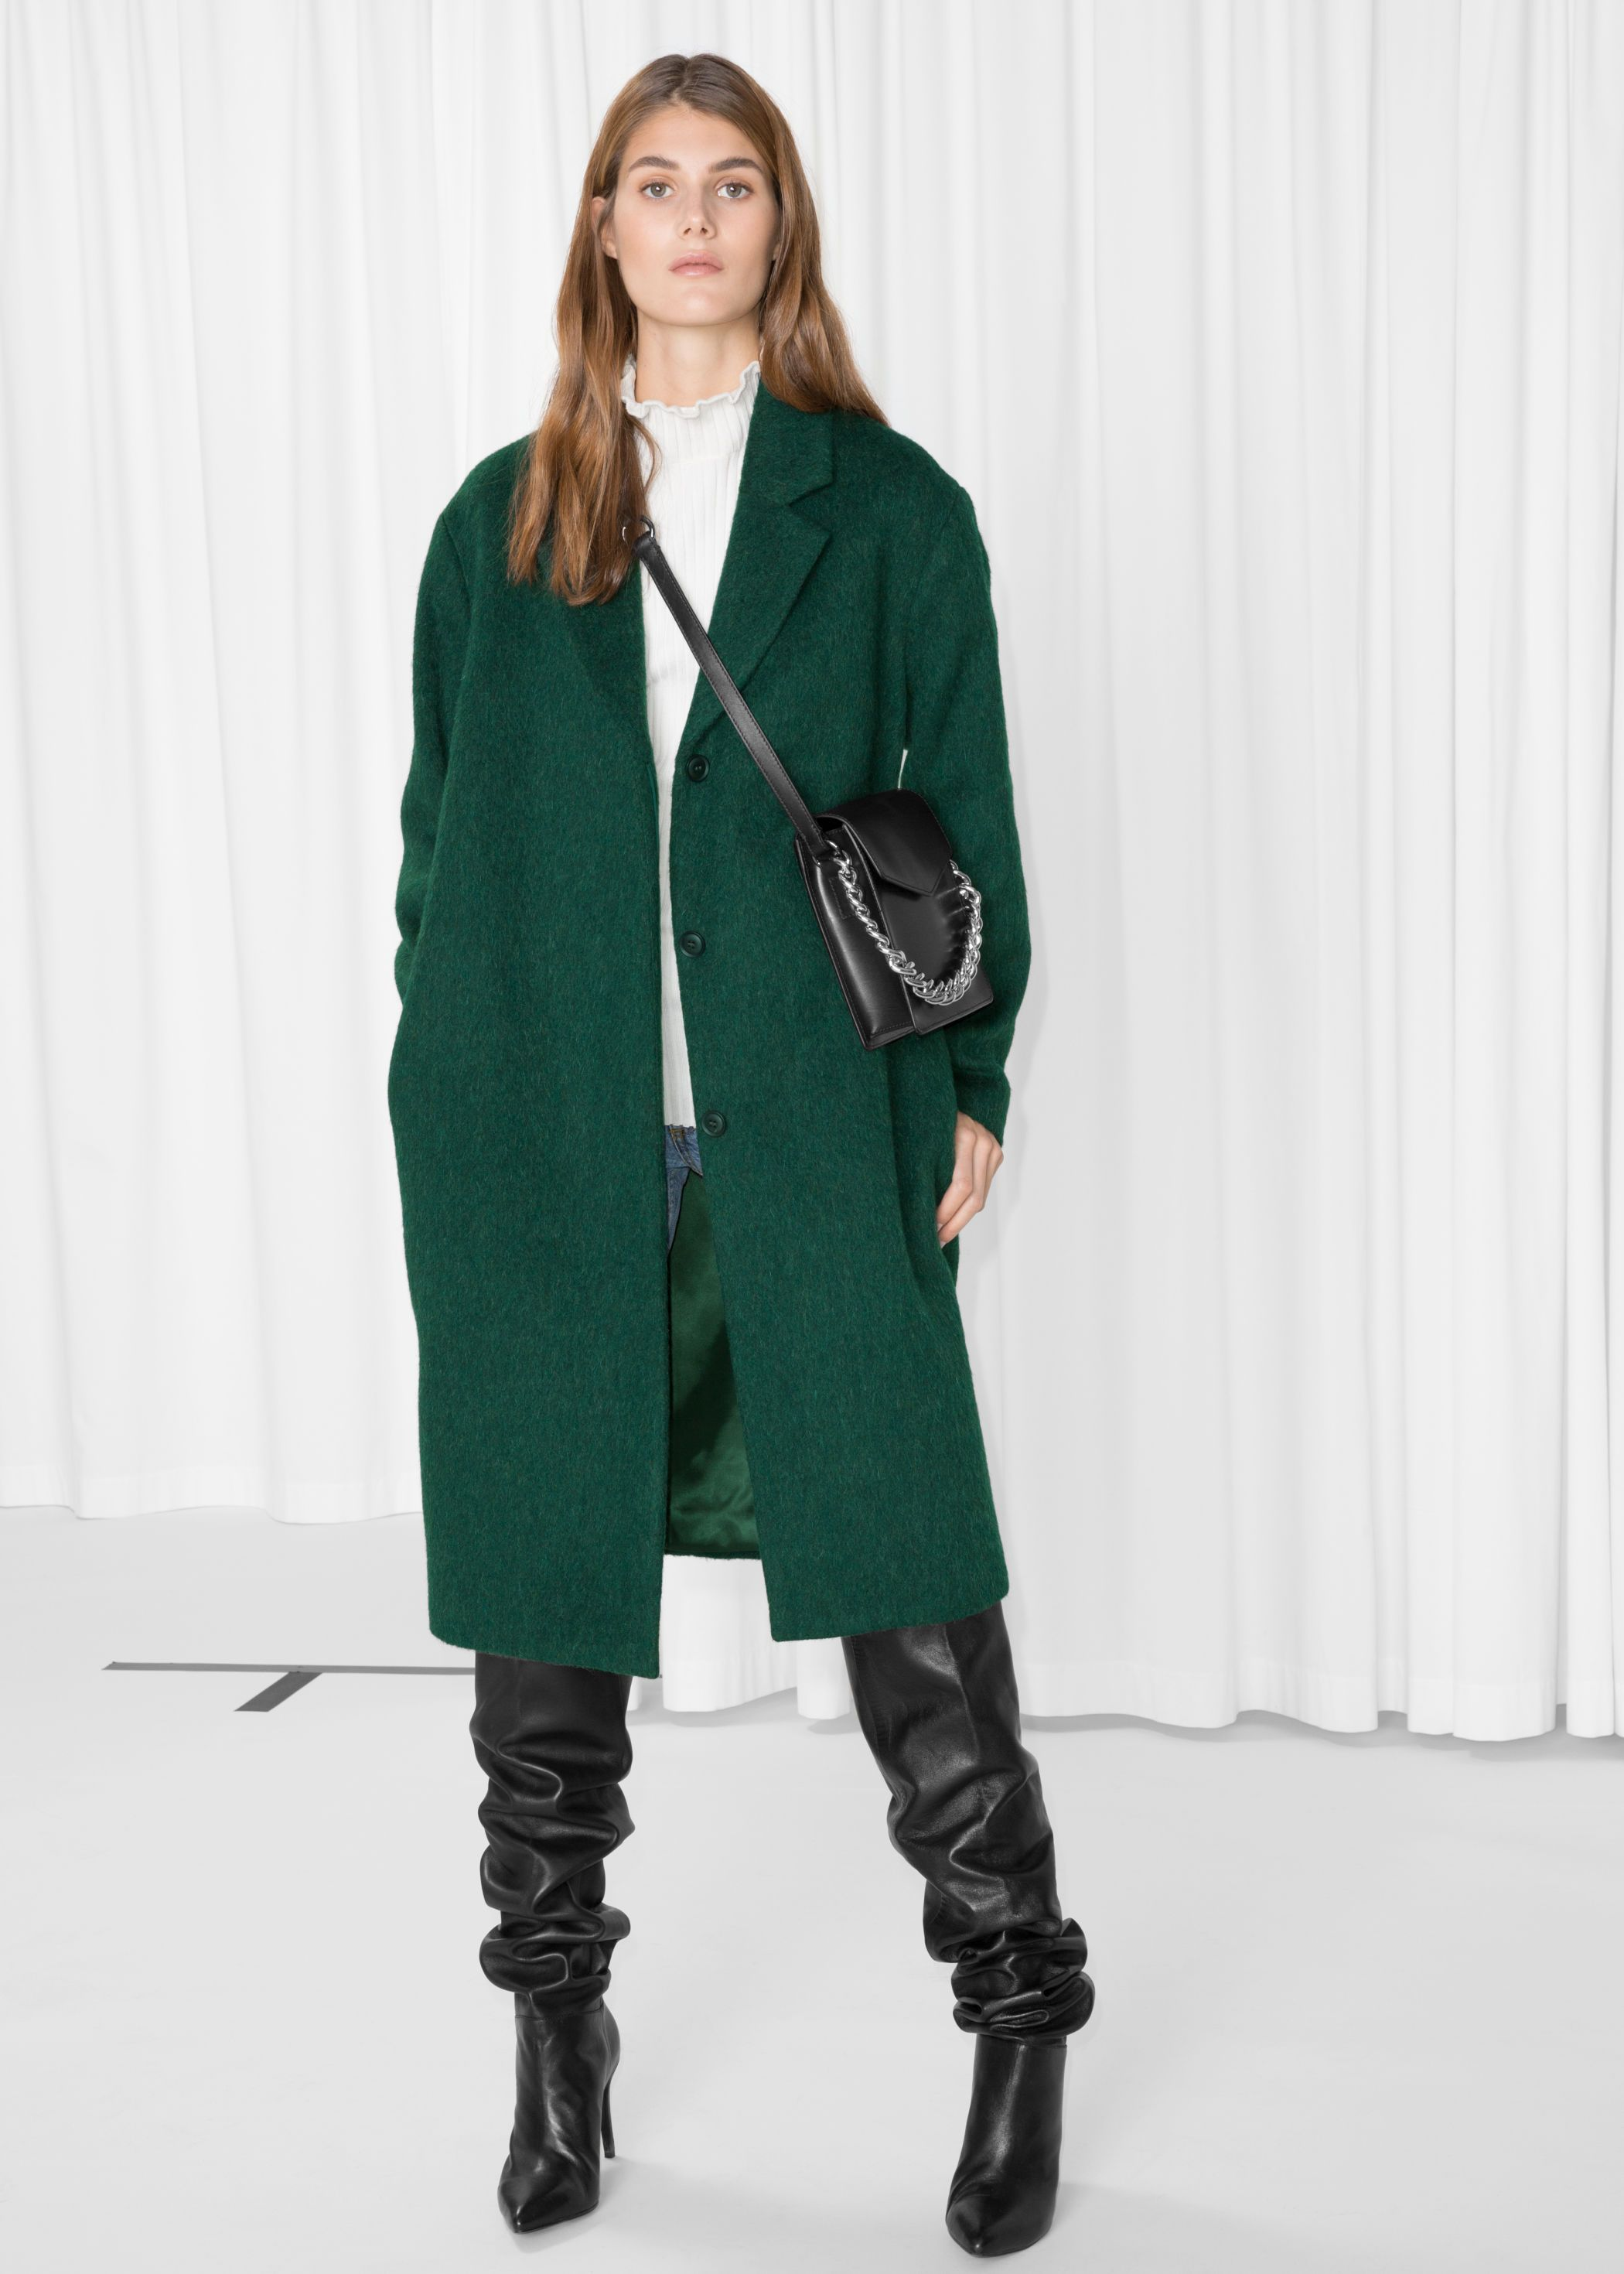 Green lady day coat and navy bows Extra Petite | Green